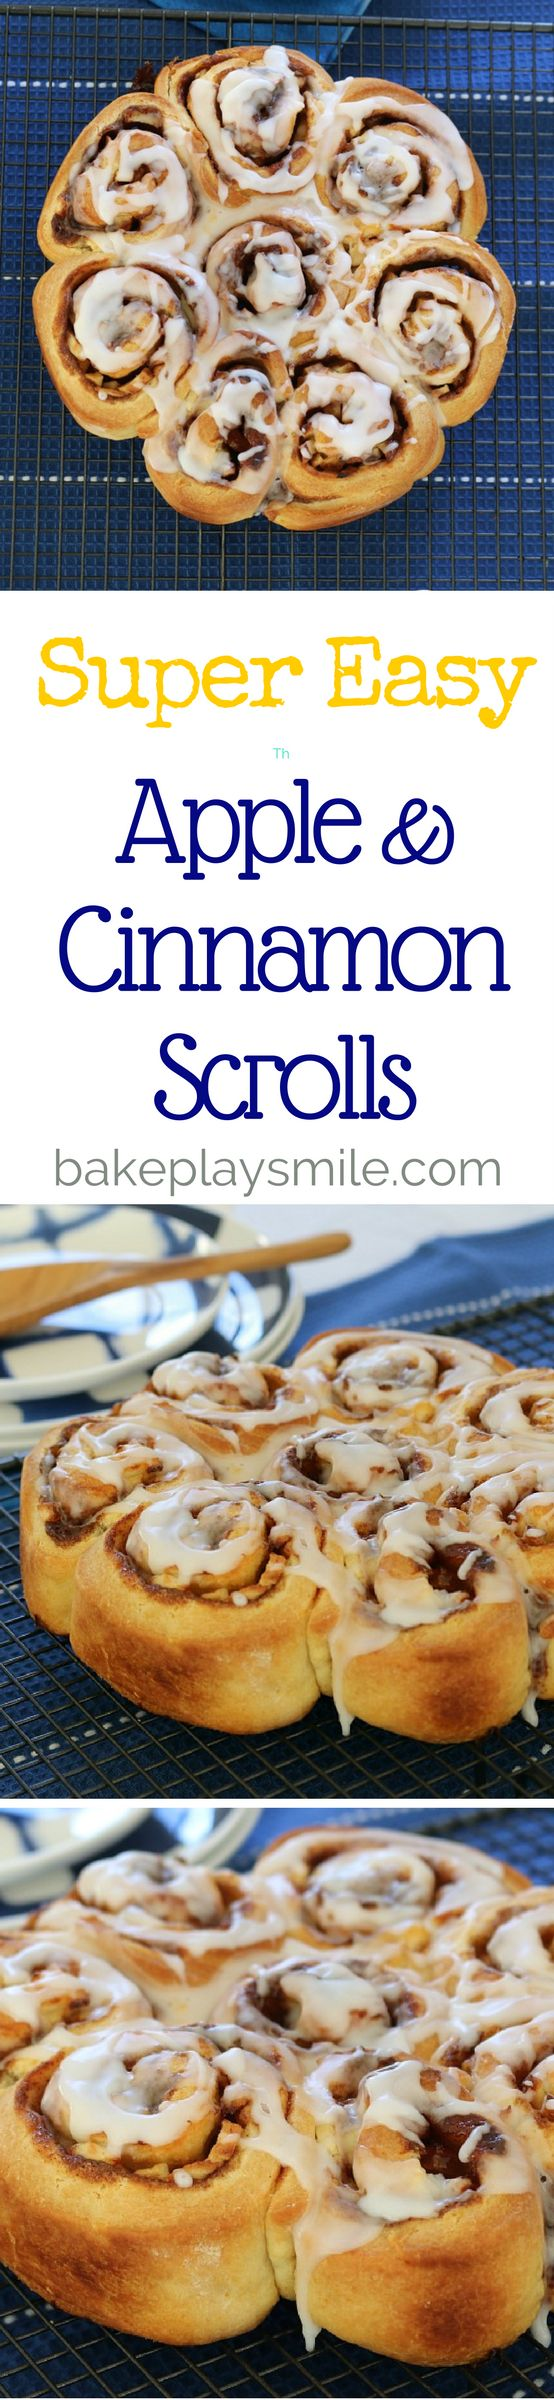 Apple & Cinnamon Scrolls  These Apple & Cinnamon Scrolls take 10 minutes to prepare, require no proving time at all… and taste amazing!  #apple #cinnamon #scrolls #icing #easy #recipe #lunchbox #snack #sweet #conventional #thermomix